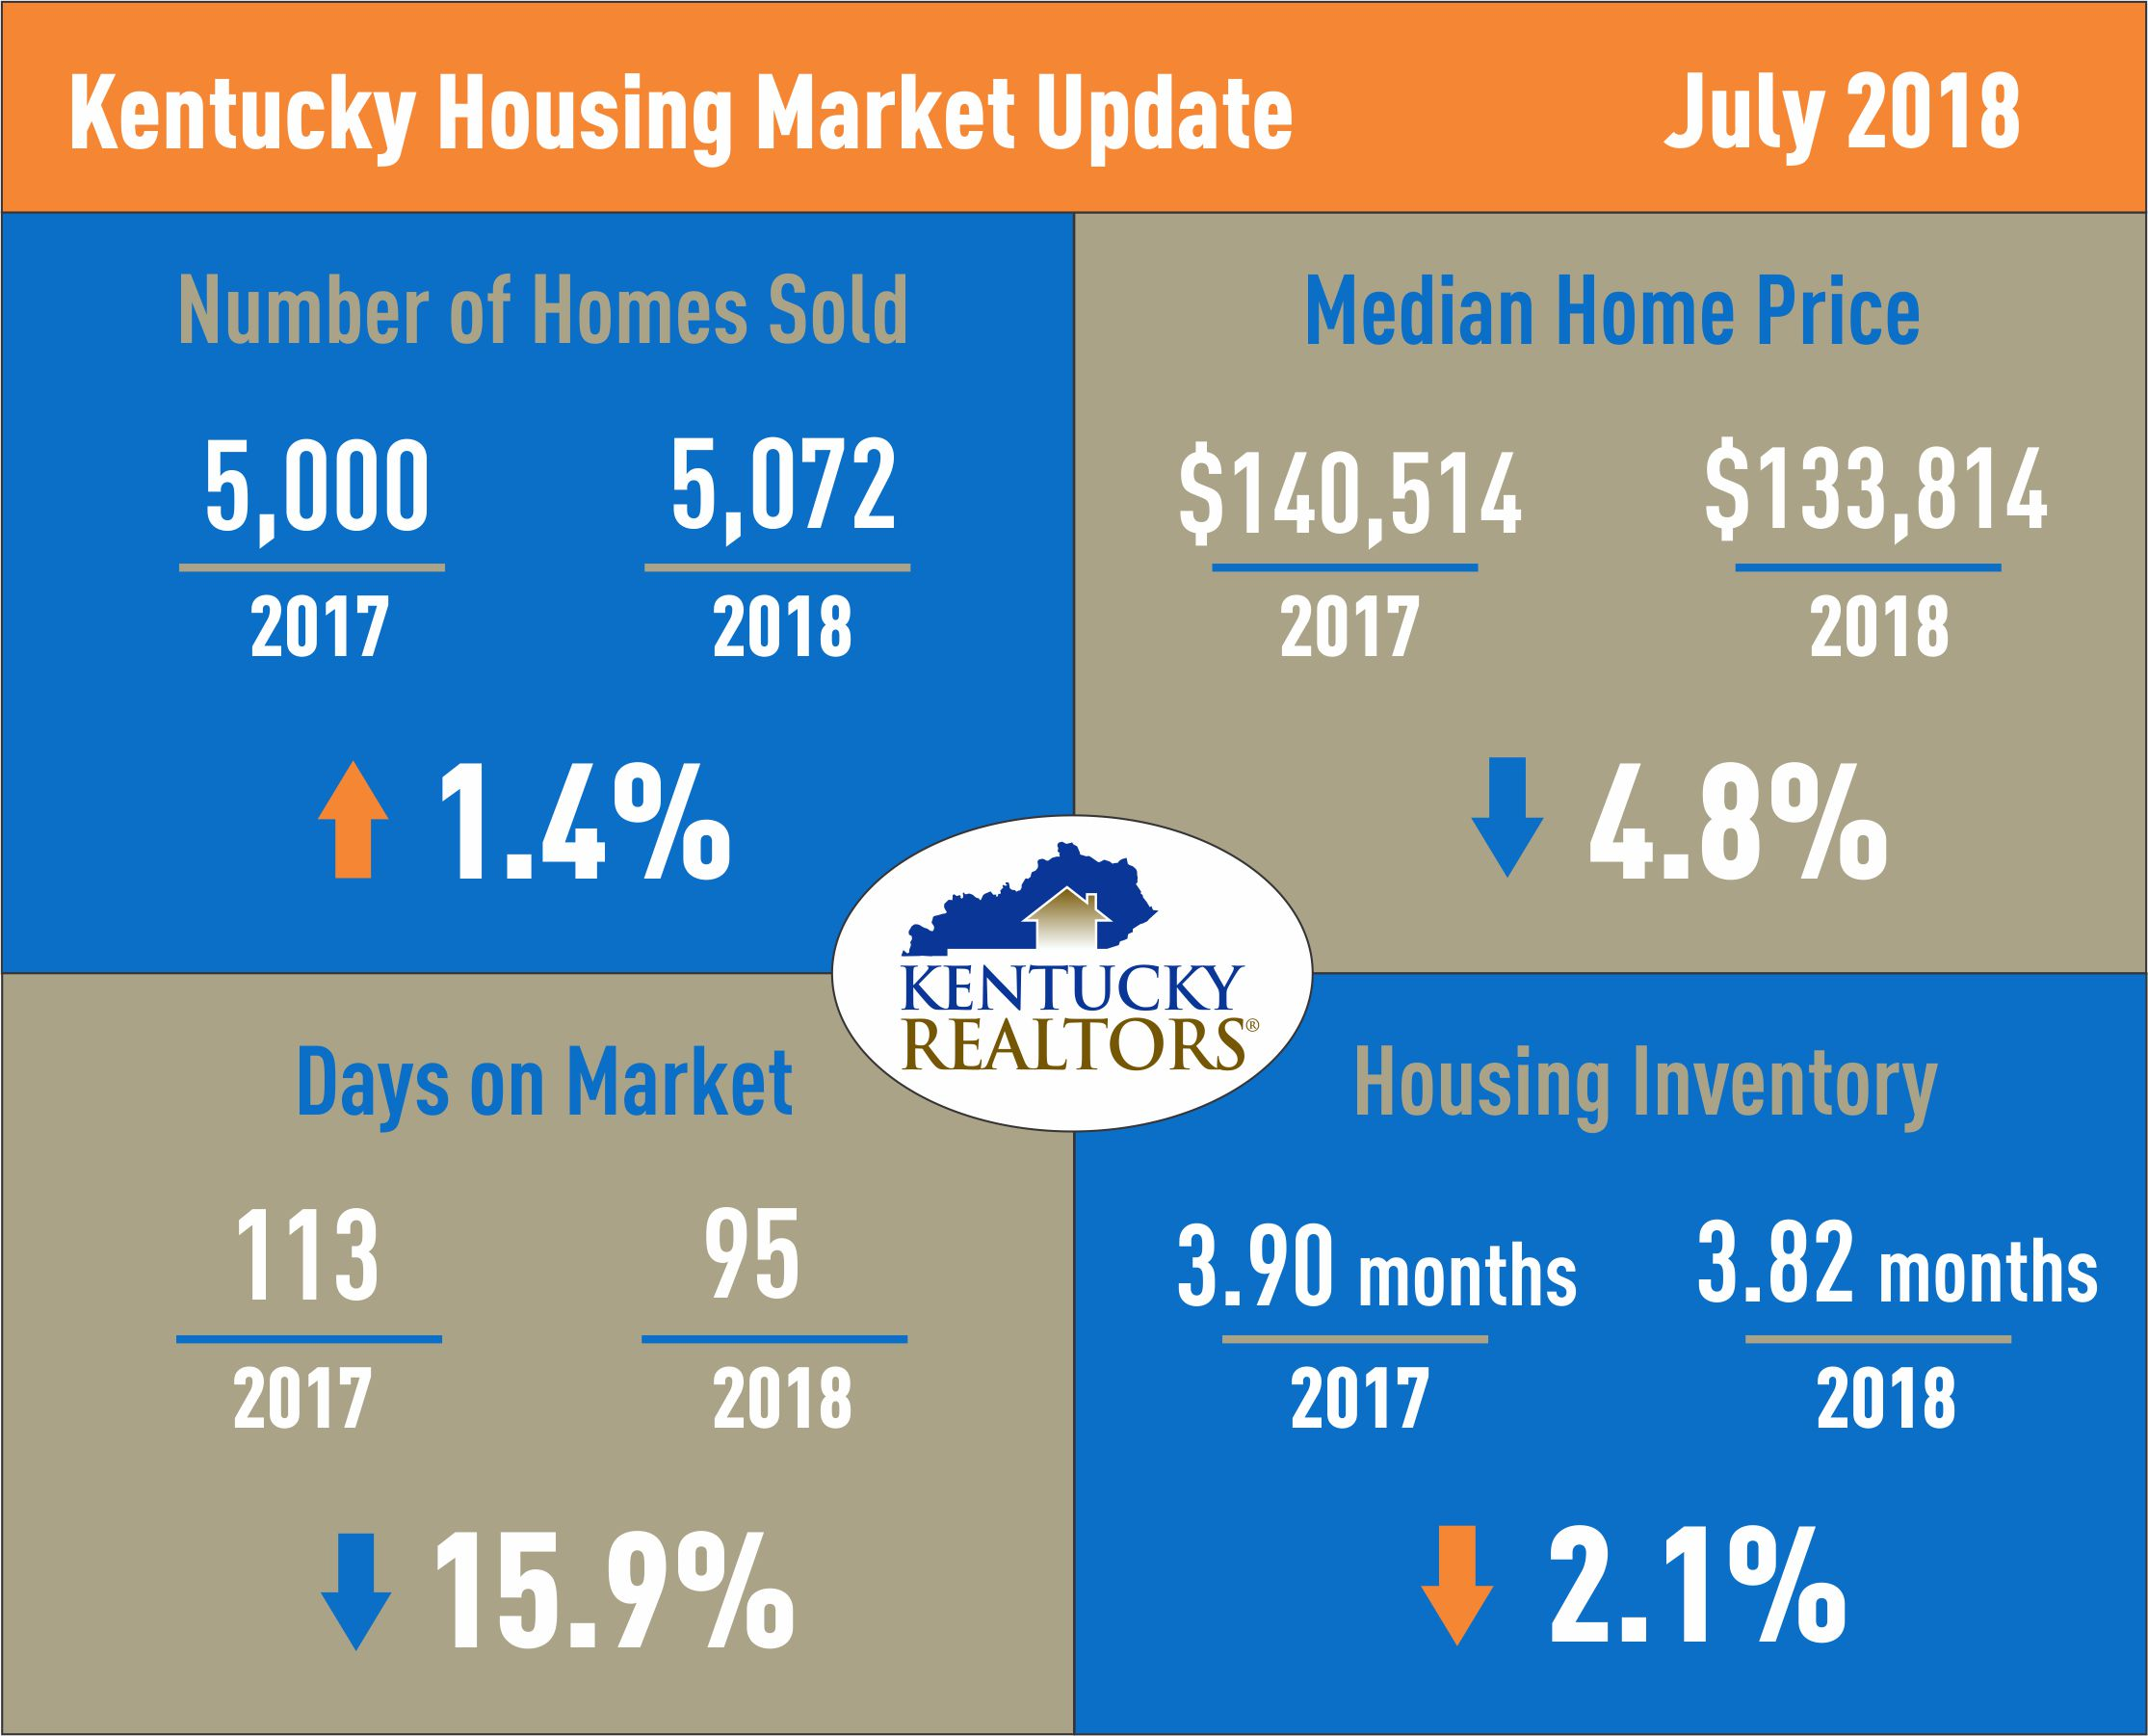 Kentucky Housing Market Update July 2018